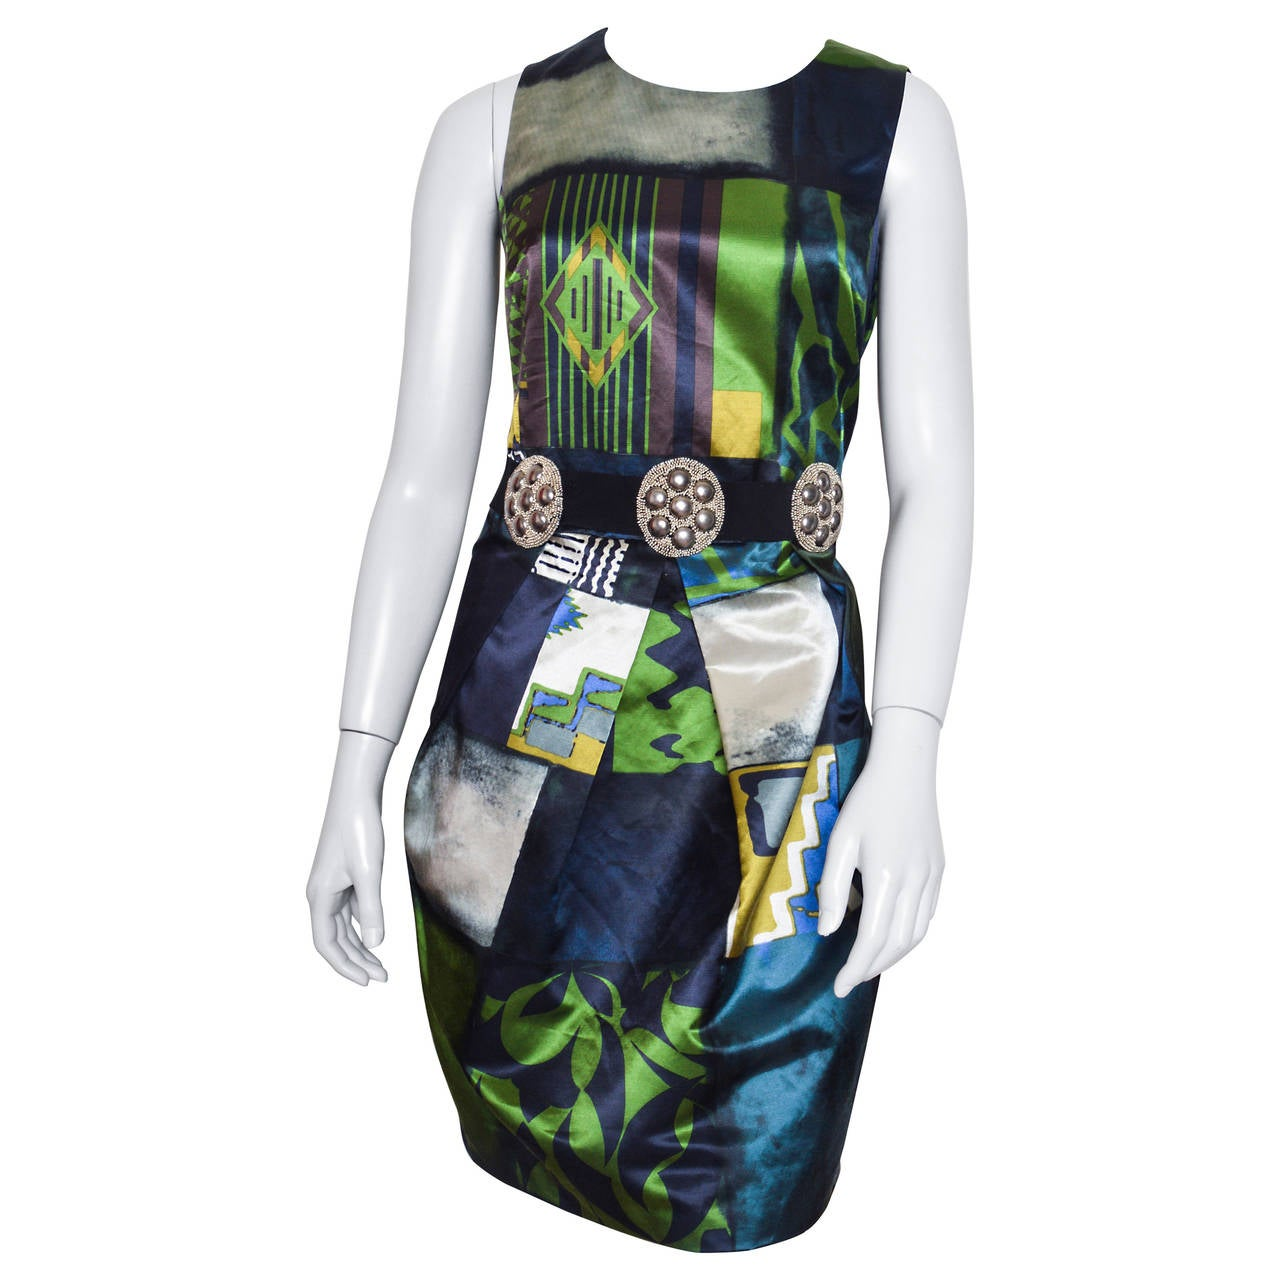 Etro Geometric Print Satin Dress with Medallion Belt